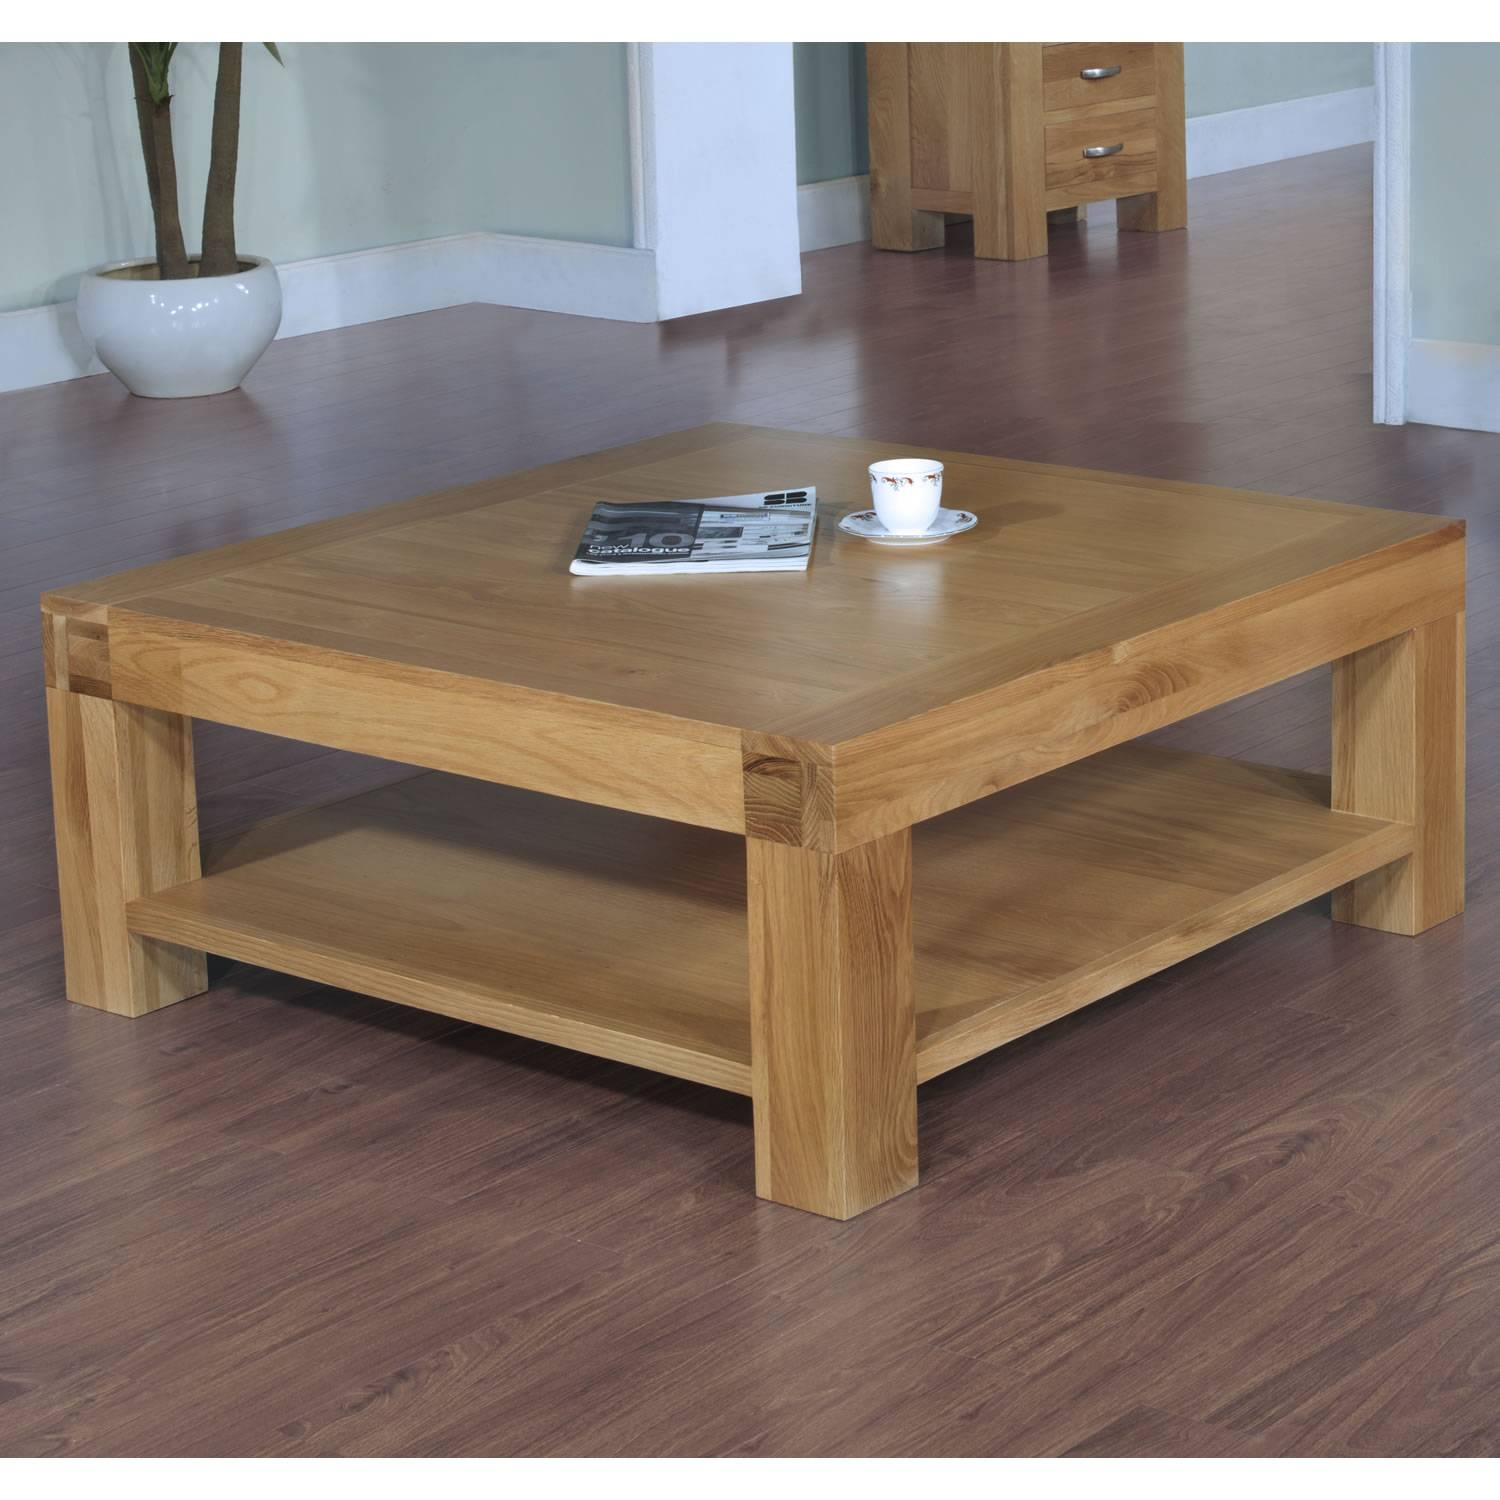 Helpful Square Coffee Tables | Home Furniture And Decor regarding Large Square Coffee Table With Storage (Image 9 of 15)